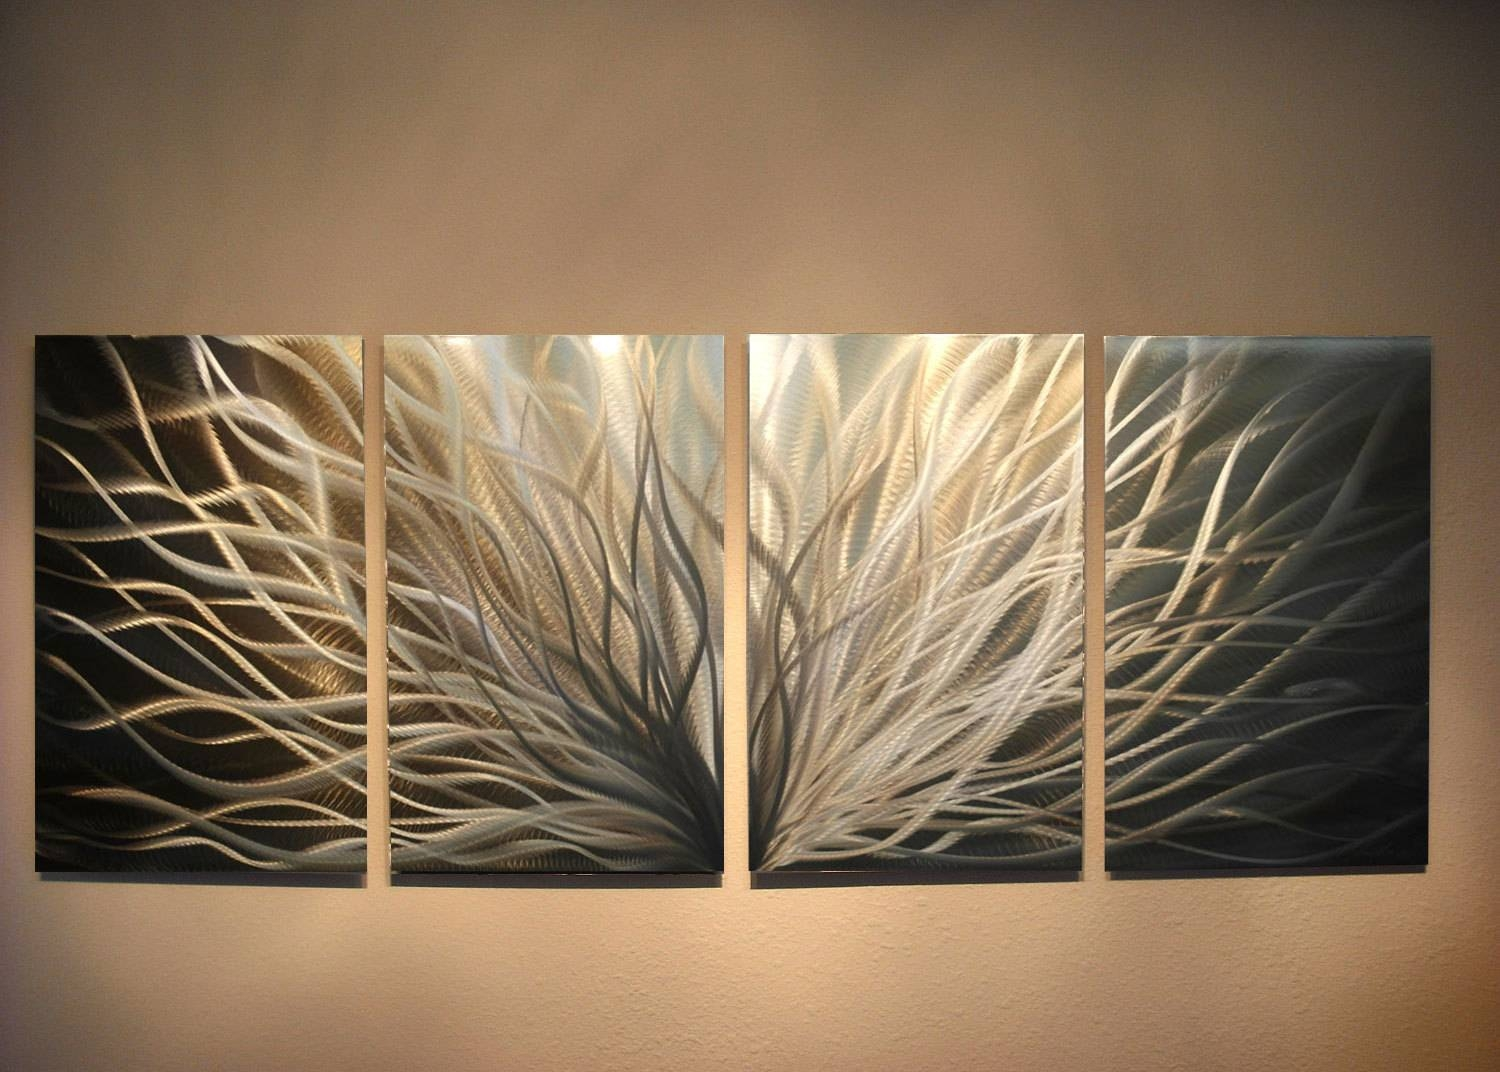 Metal Art Wall Art Decor Aluminum Abstract Contemporary Modern Intended For Most Recent Modern Metal Wall Art Decors (View 6 of 20)